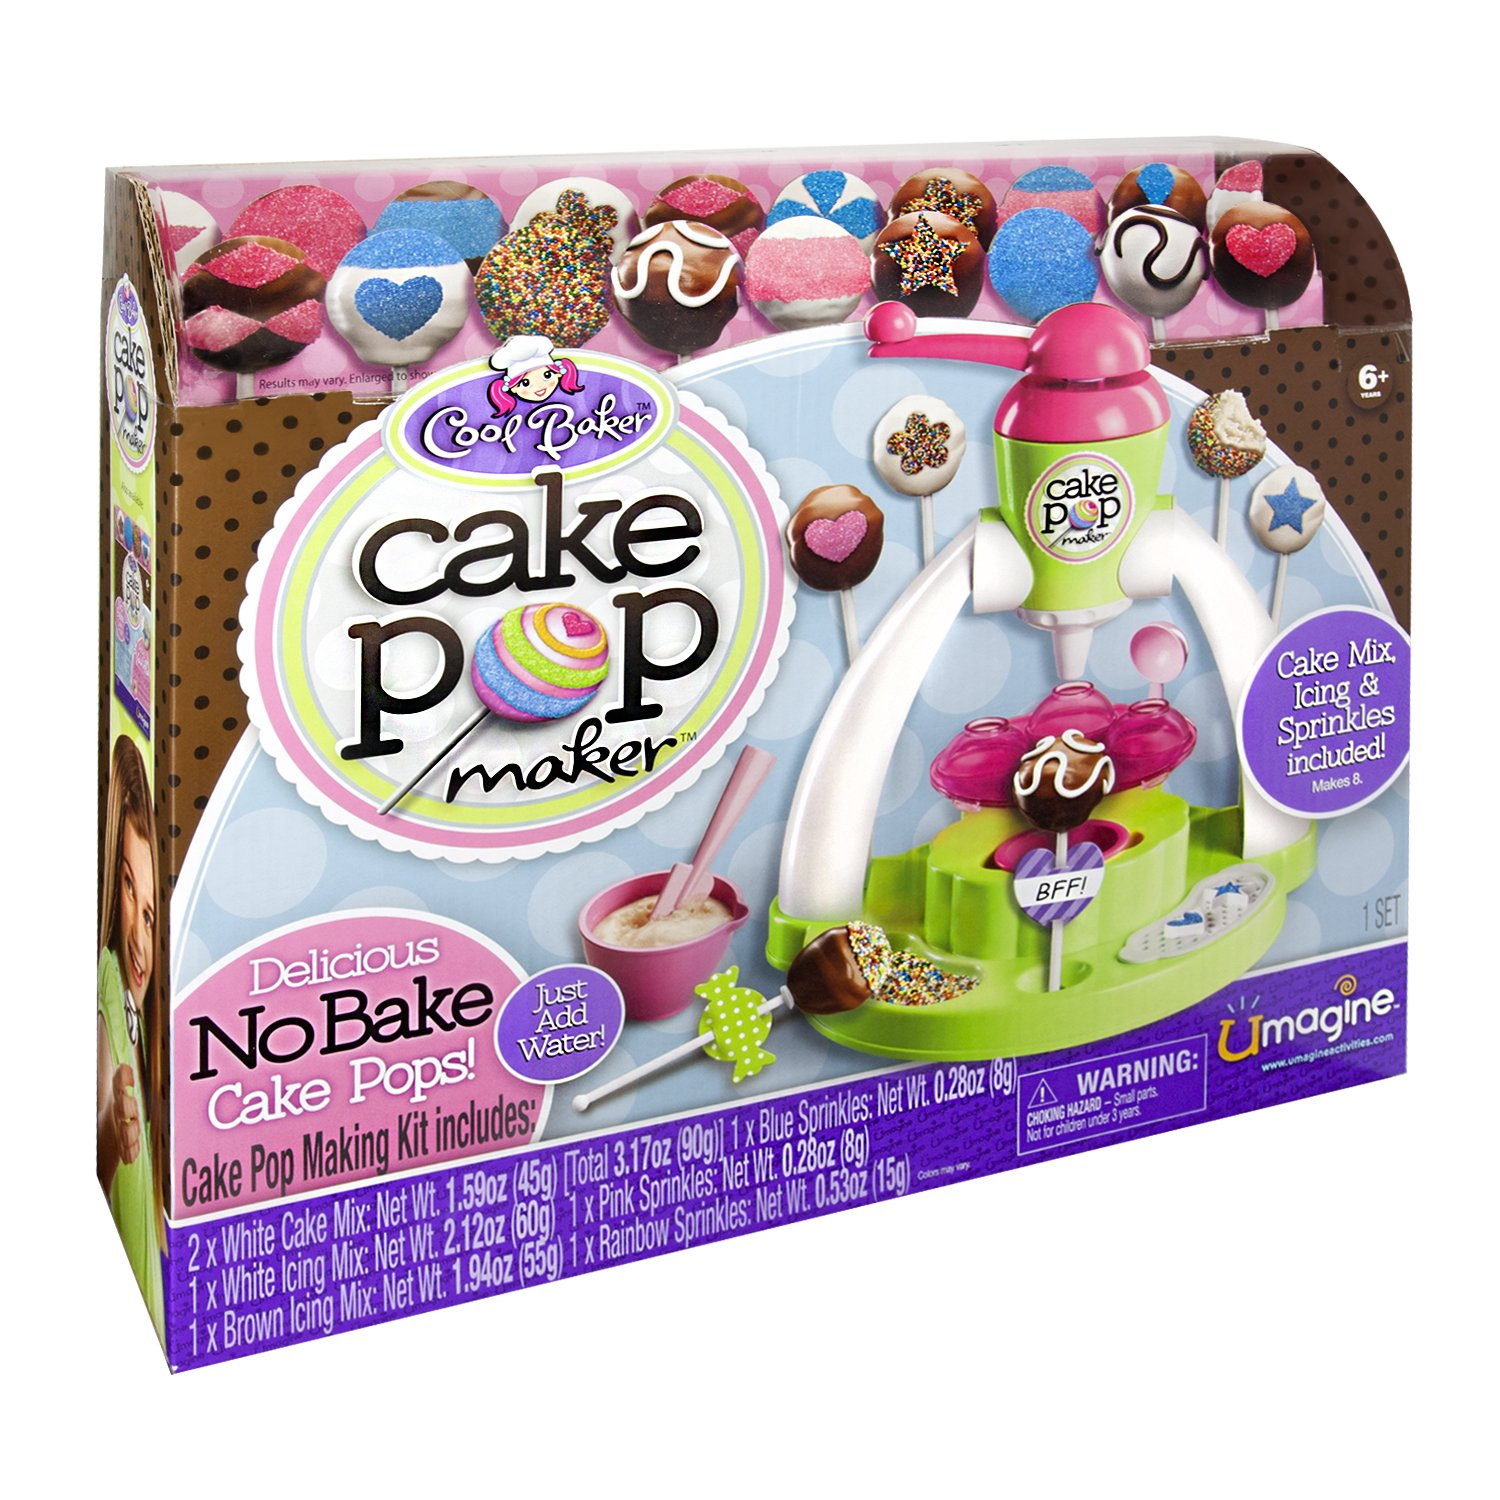 Cool Baker Cake Pop Maker by Umagine (Image #3)